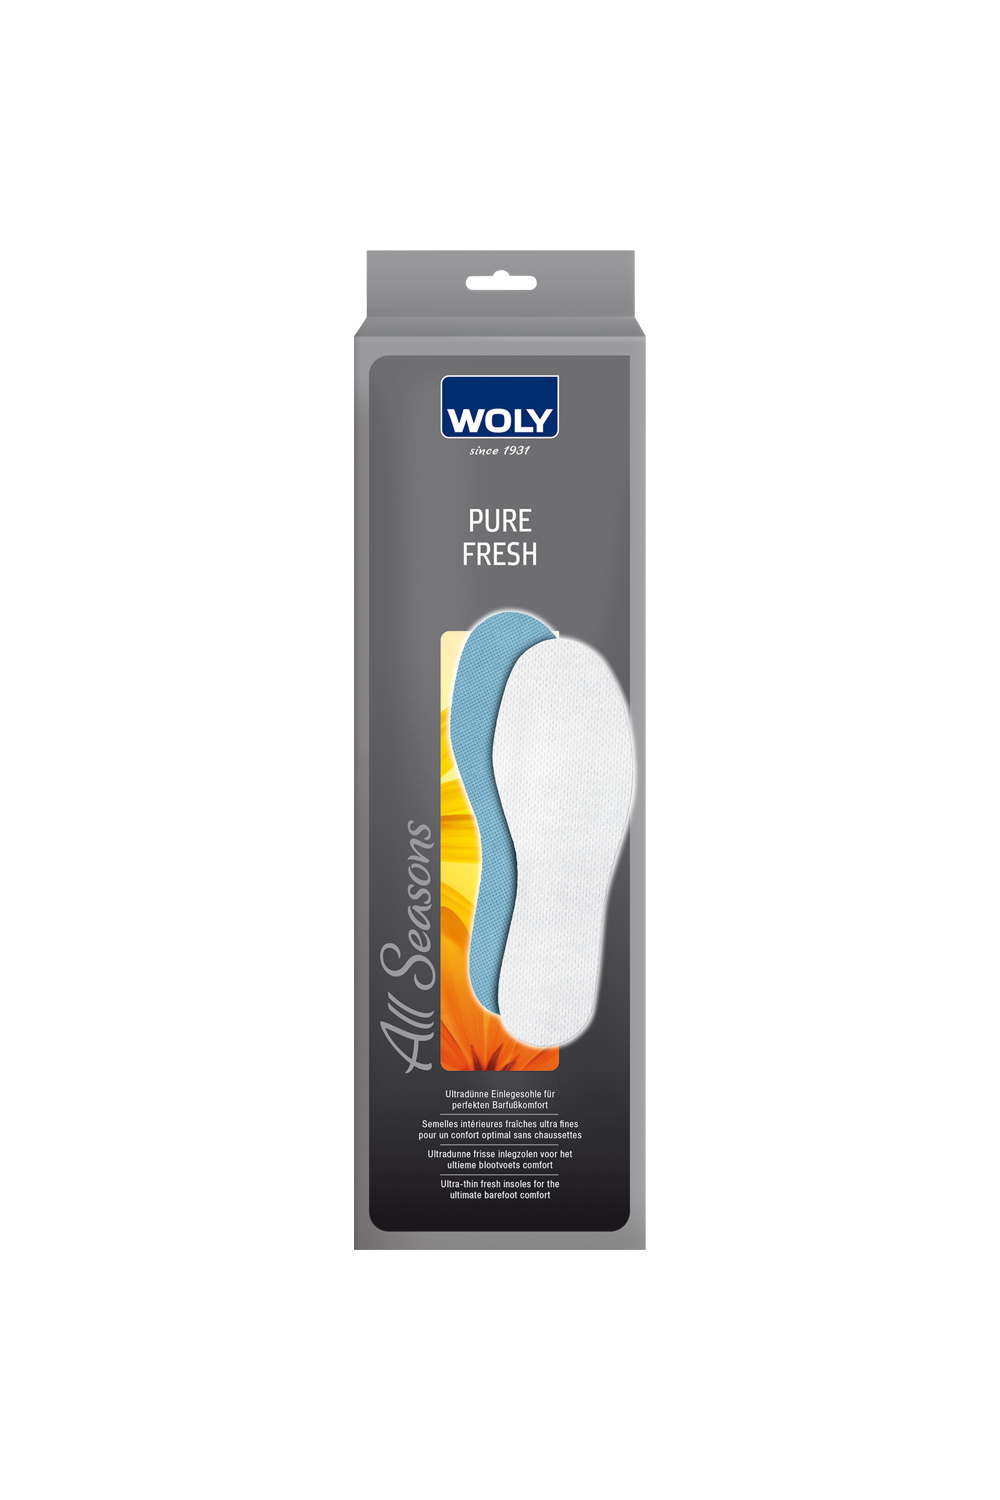 Woly Pure Fresh